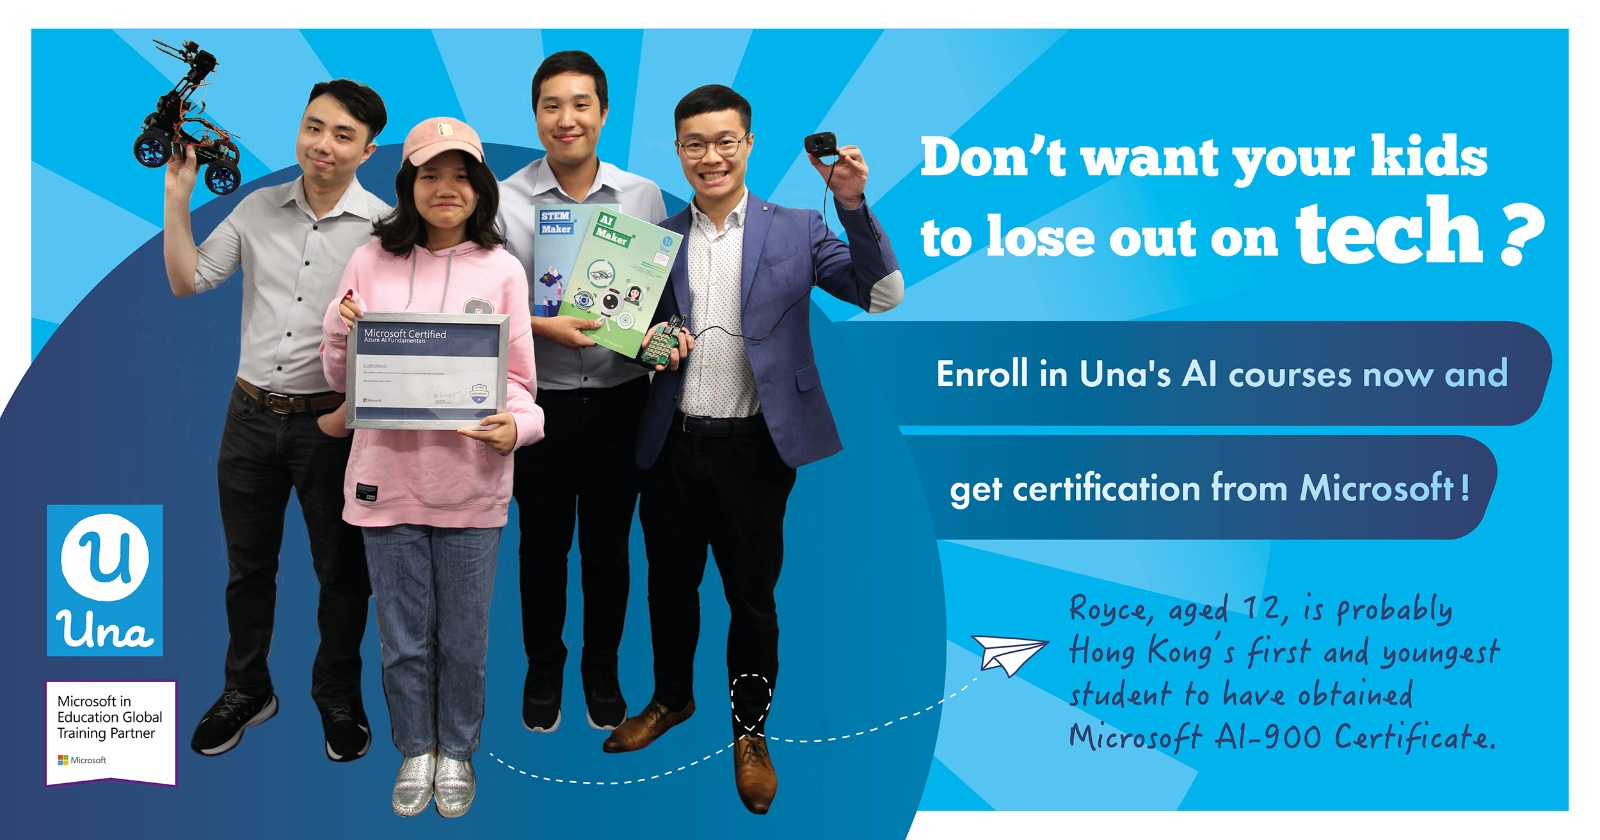 Hong Kong's first and youngest student to have obtained Microsoft AI-900 Certificate!